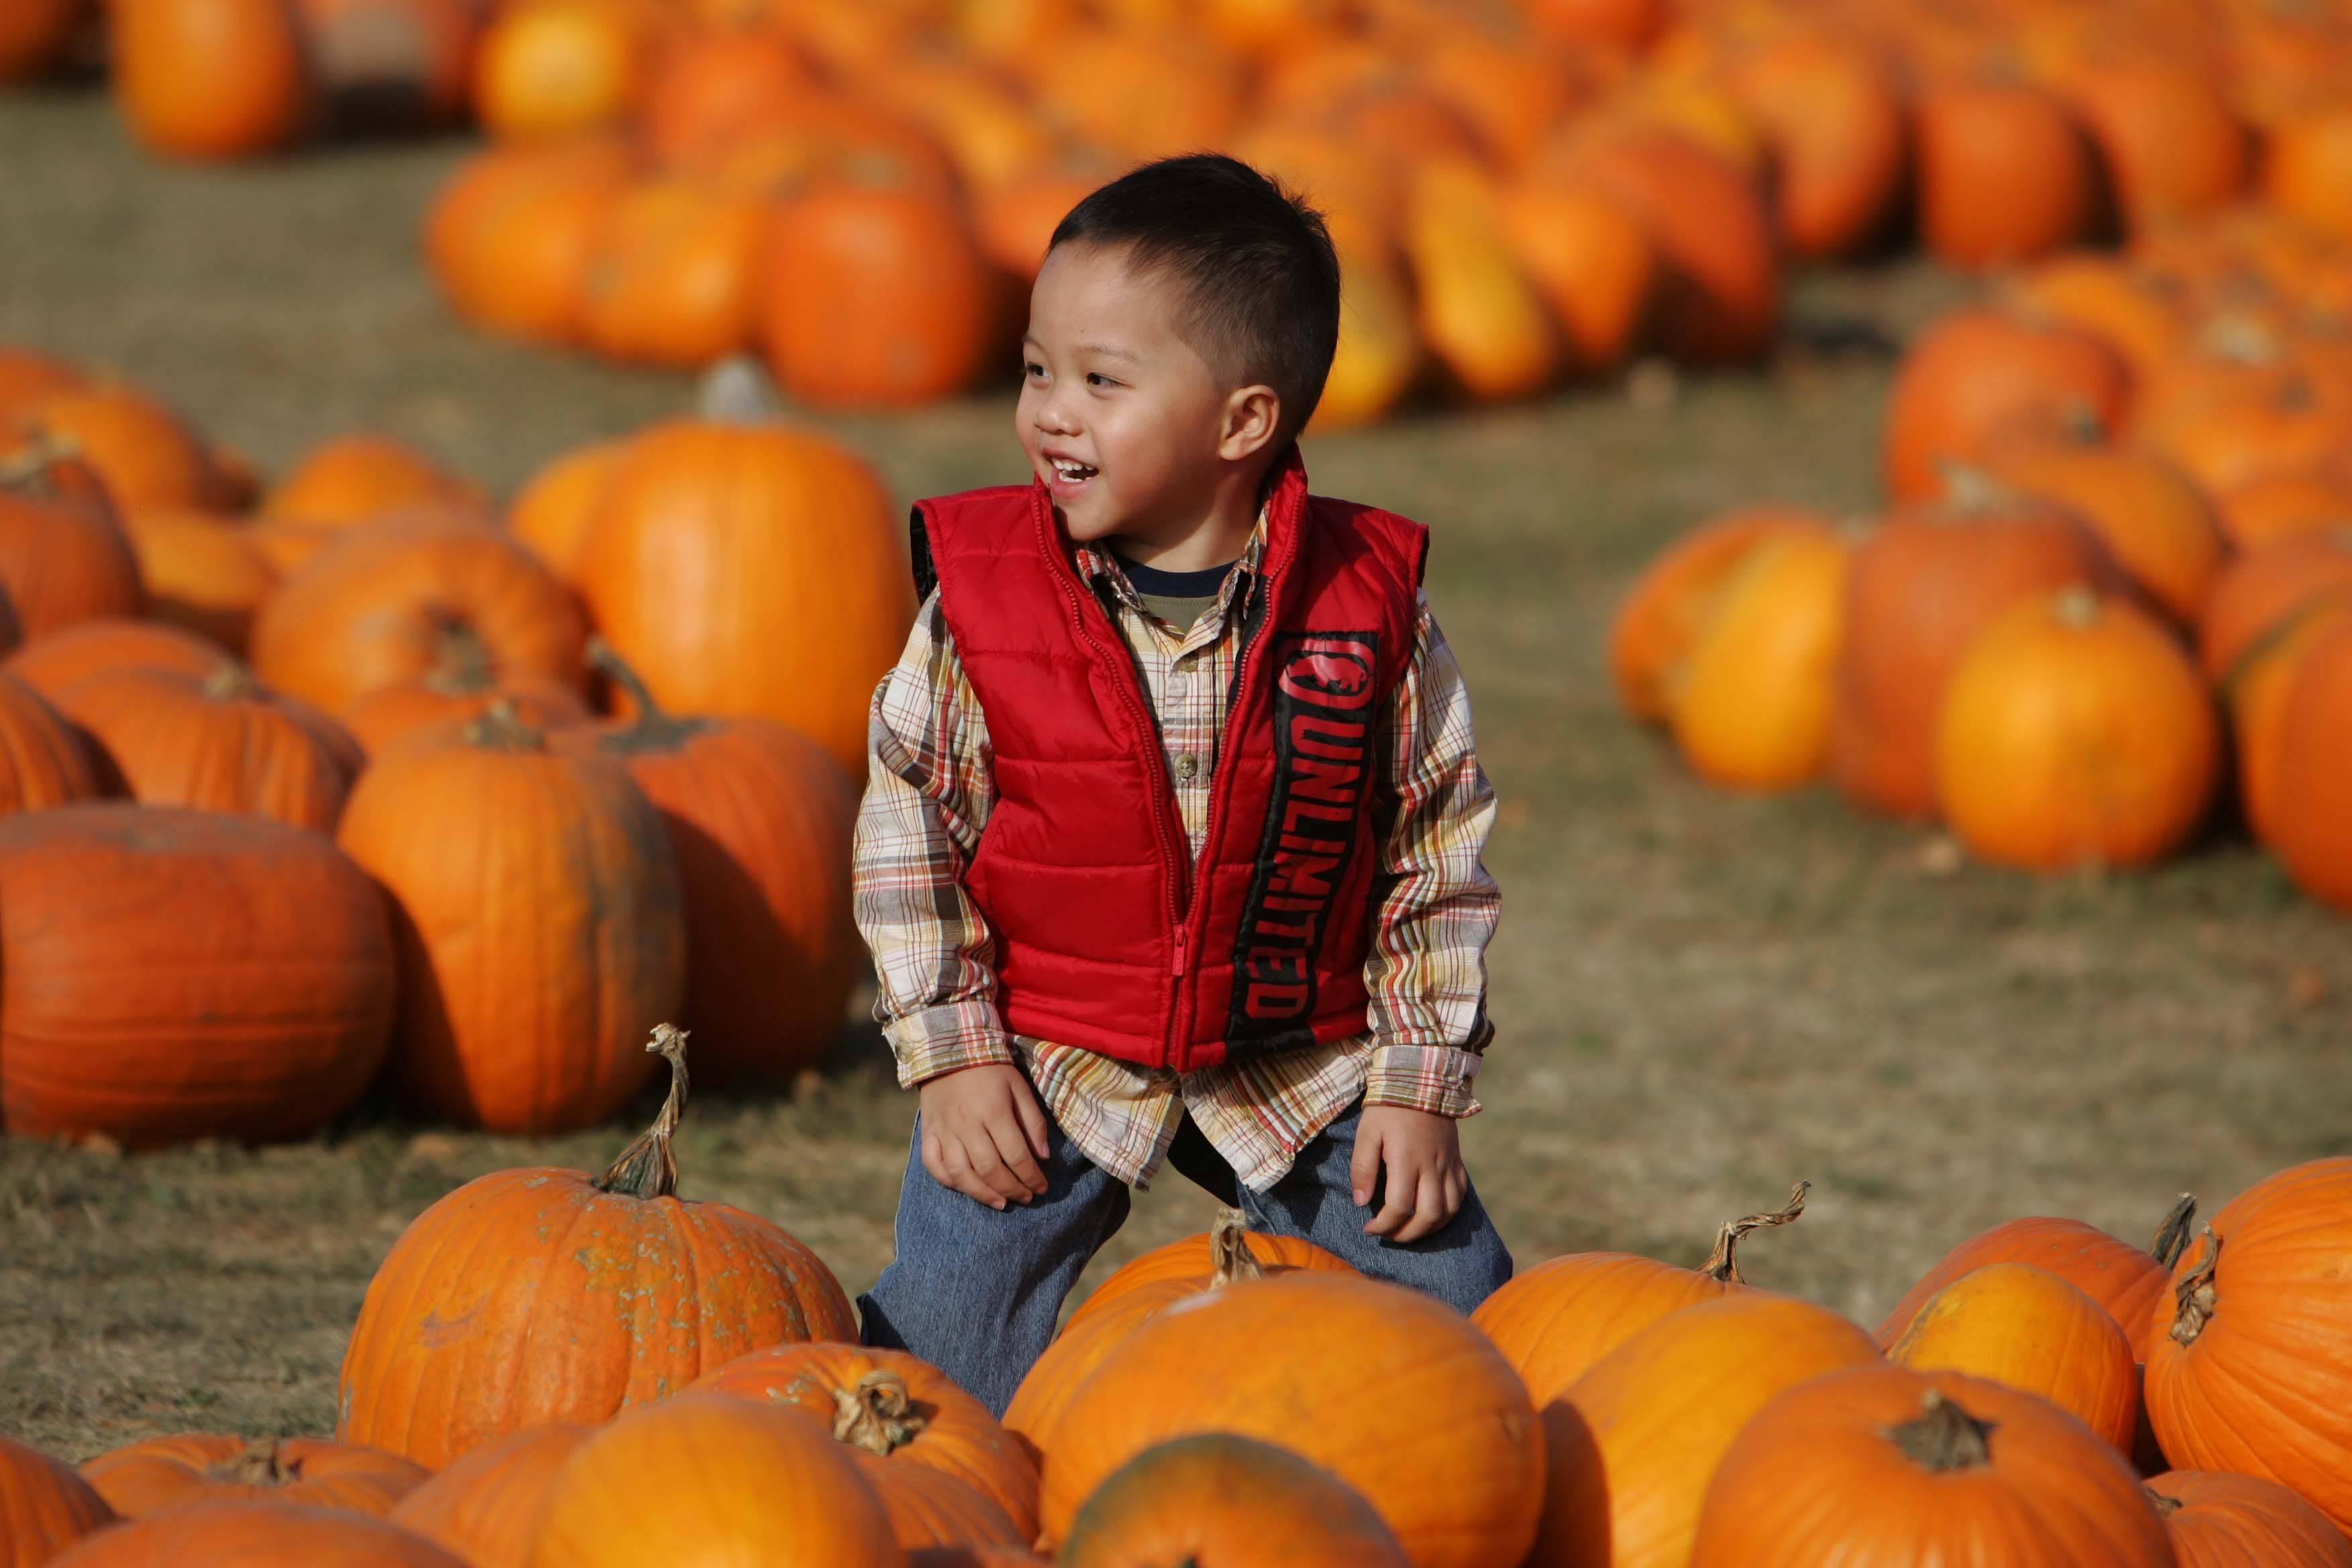 Three-year-old Nathan Sanchez of Elgin wades through a sea of pumpkins to help pick out the best one Thursday at Randy's Vegetables in Elgin.